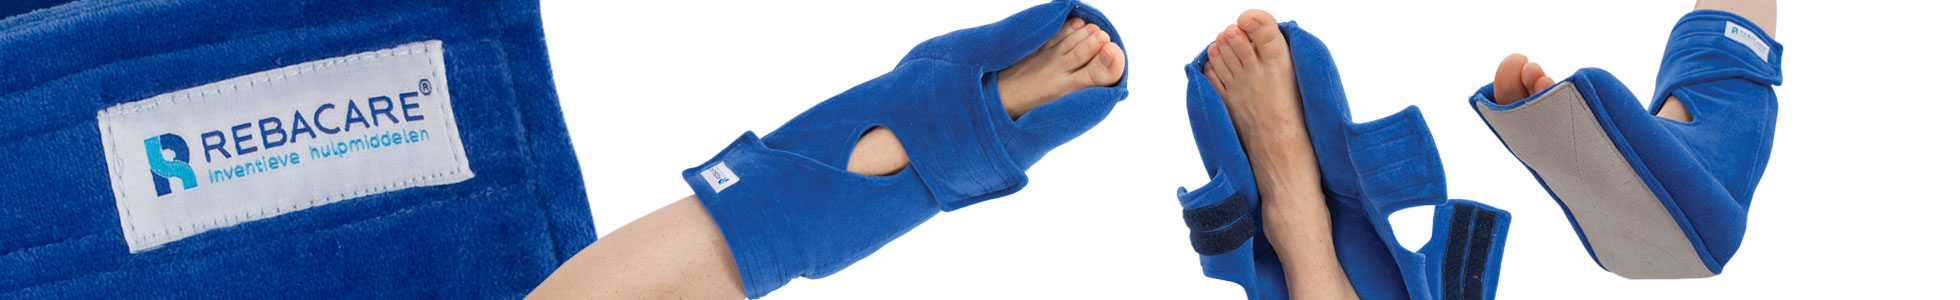 Orthopedic Bandage shoe /heel protector from REBACARE®